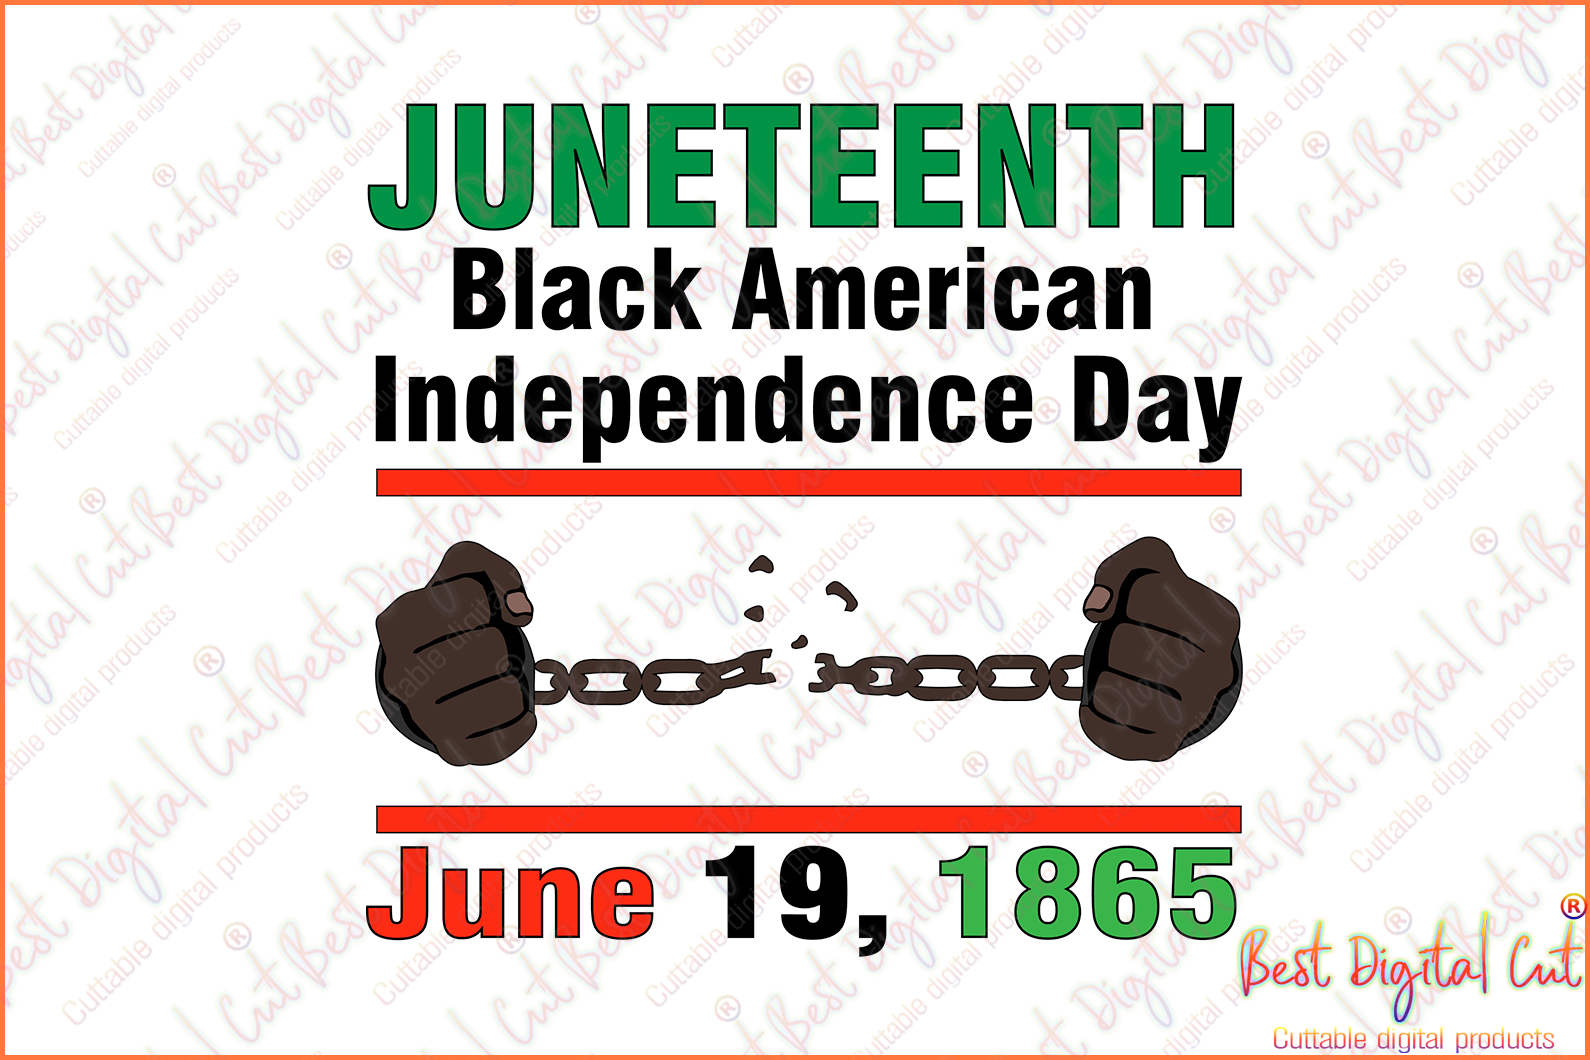 Juneteenth black American svg,freedom day svg,June 19th svg,emancipation day svg,1776 July 4th,independence day svg,black African hands,American pride gift,black lives matter shirt,black history month,silhouette svg, cricut svg files